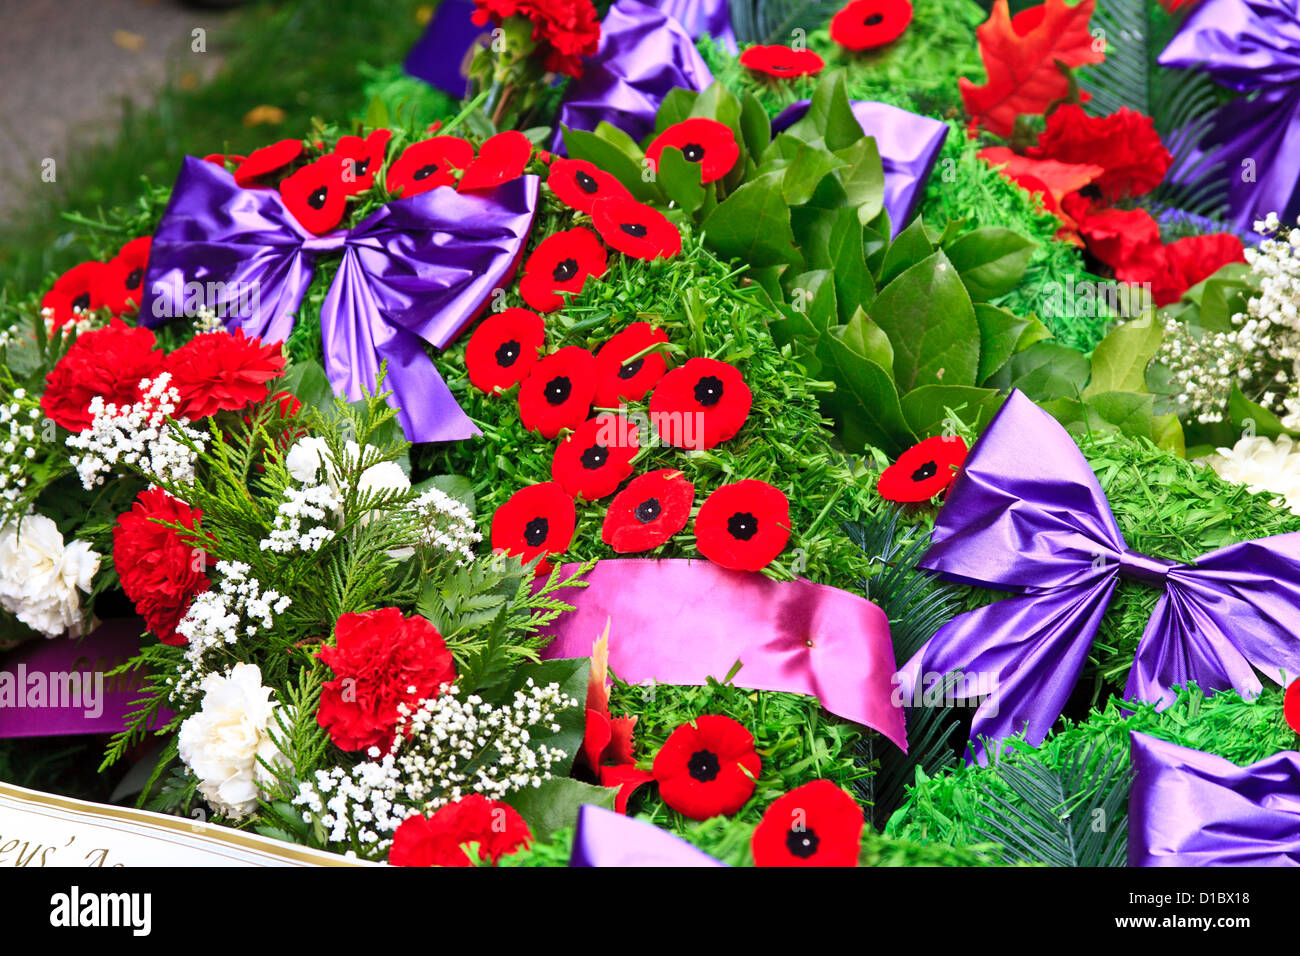 Wreaths and Poppies at  Remembrance Day Service Nov 11 Canada - Stock Image